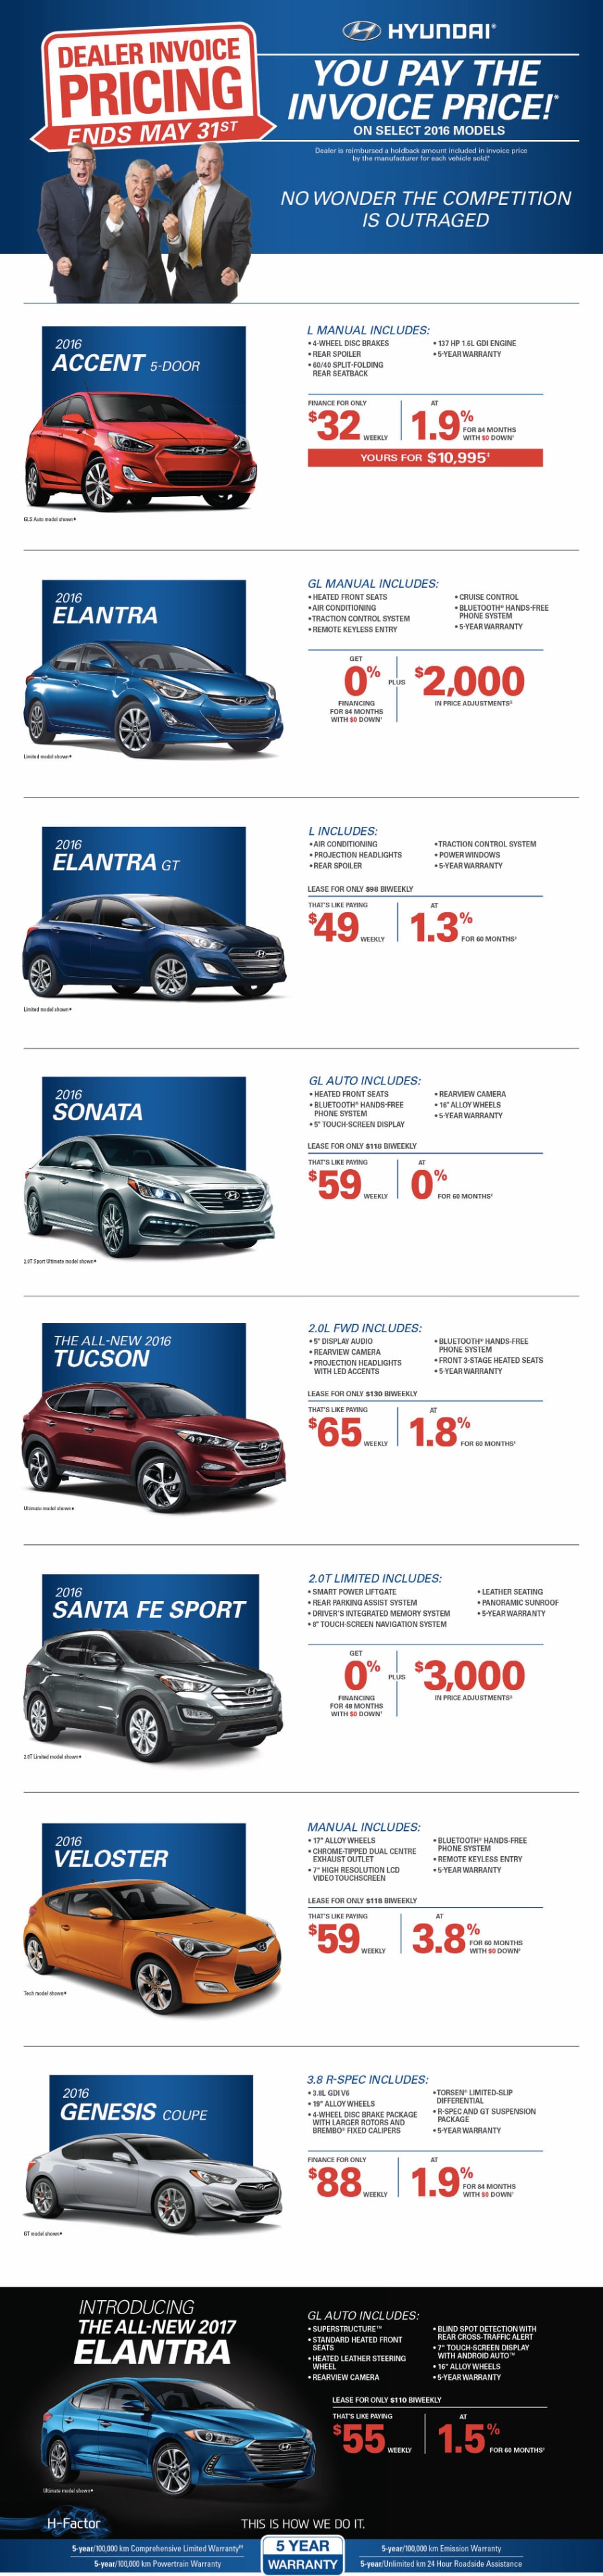 Hyundai Invoice Pricing Now On At Hyundai Of Oakville - Dealer invoice price hyundai accent